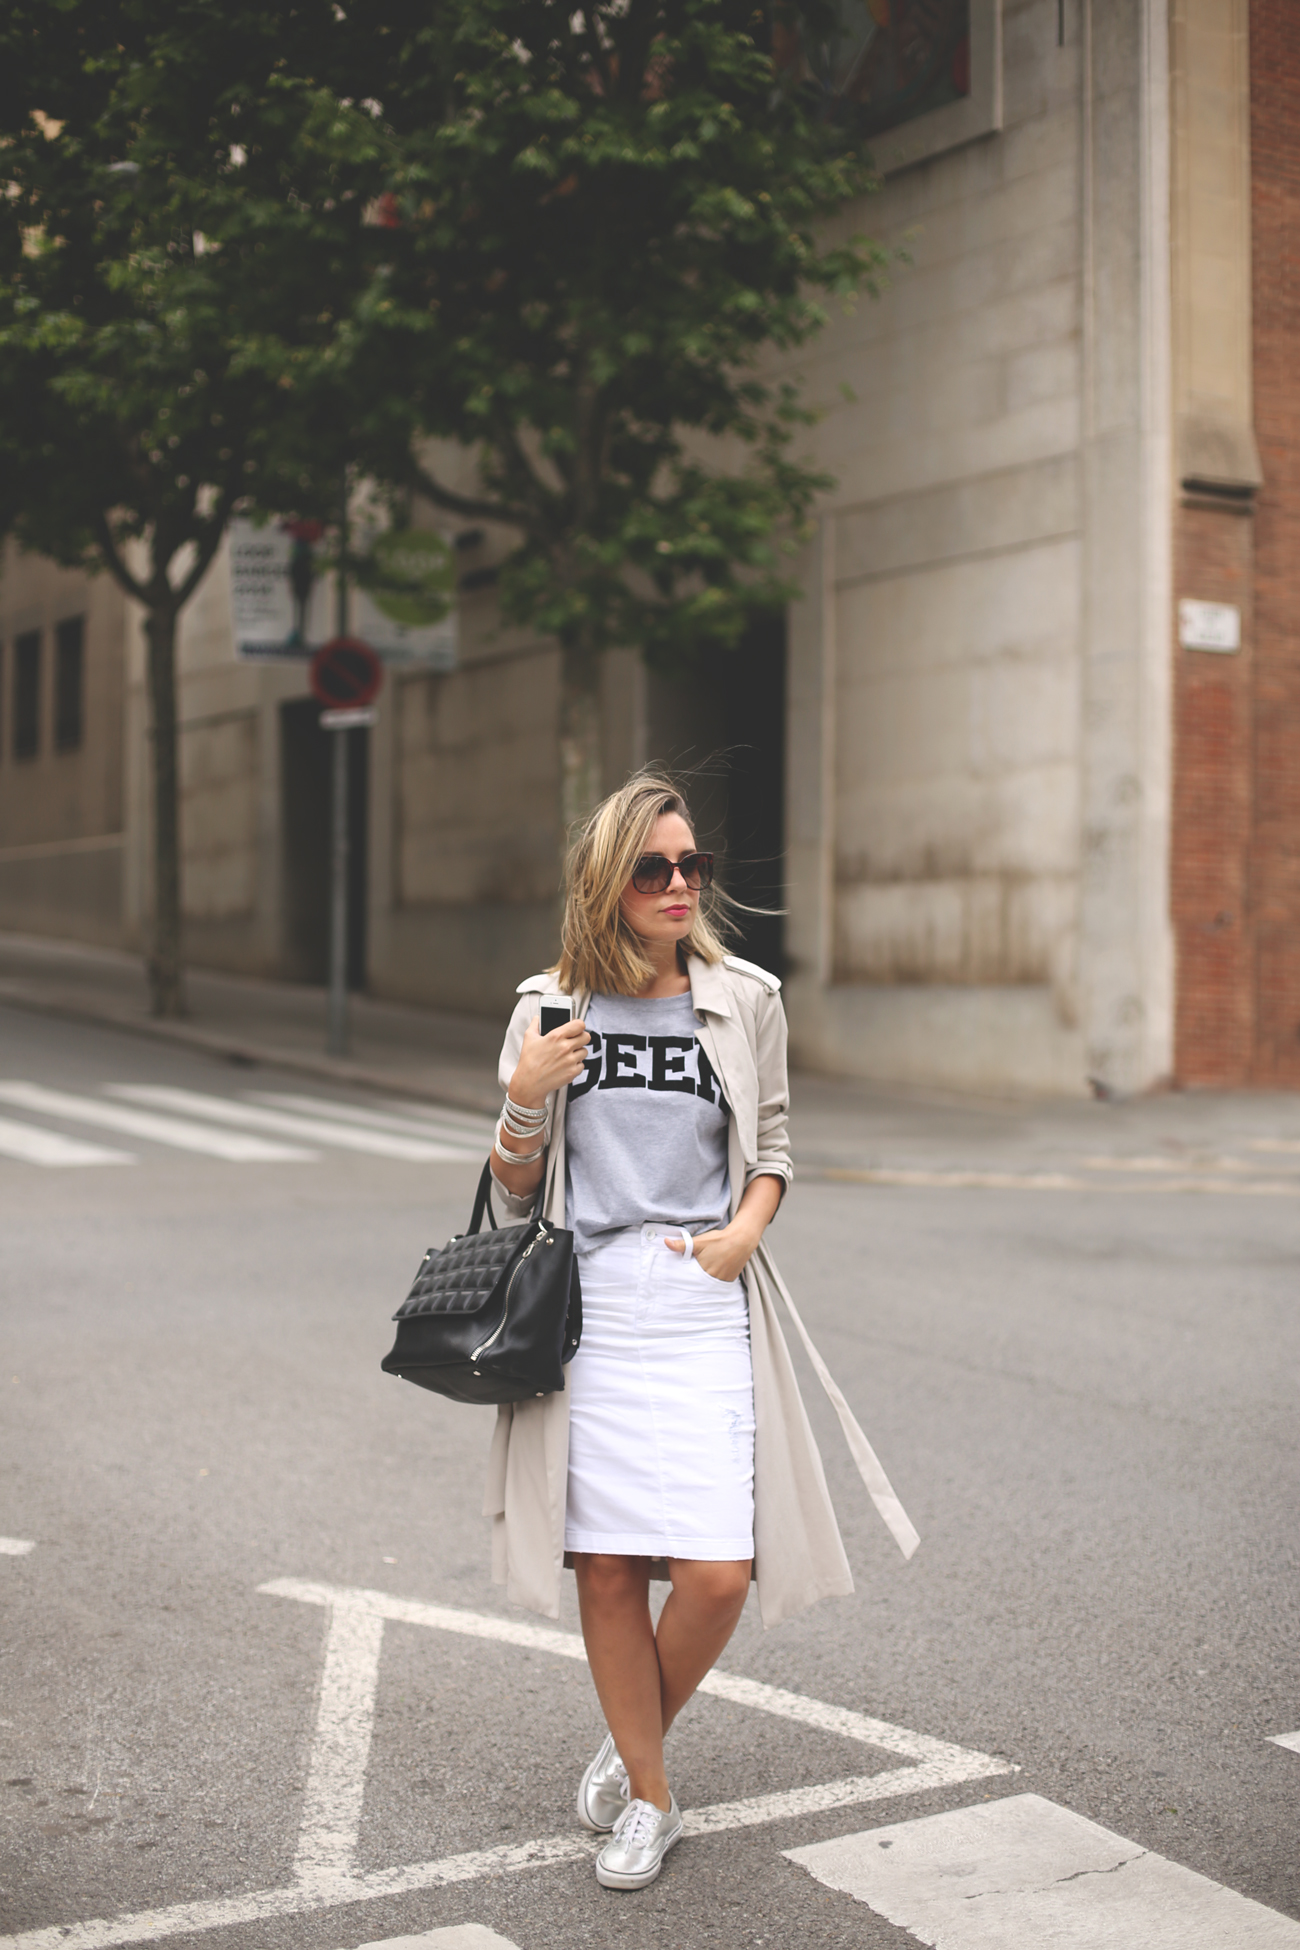 Trench, priscila betancort, fashion blog, street style, spanish blogger, white skirt, look con falda, vans plata, blonde girl,